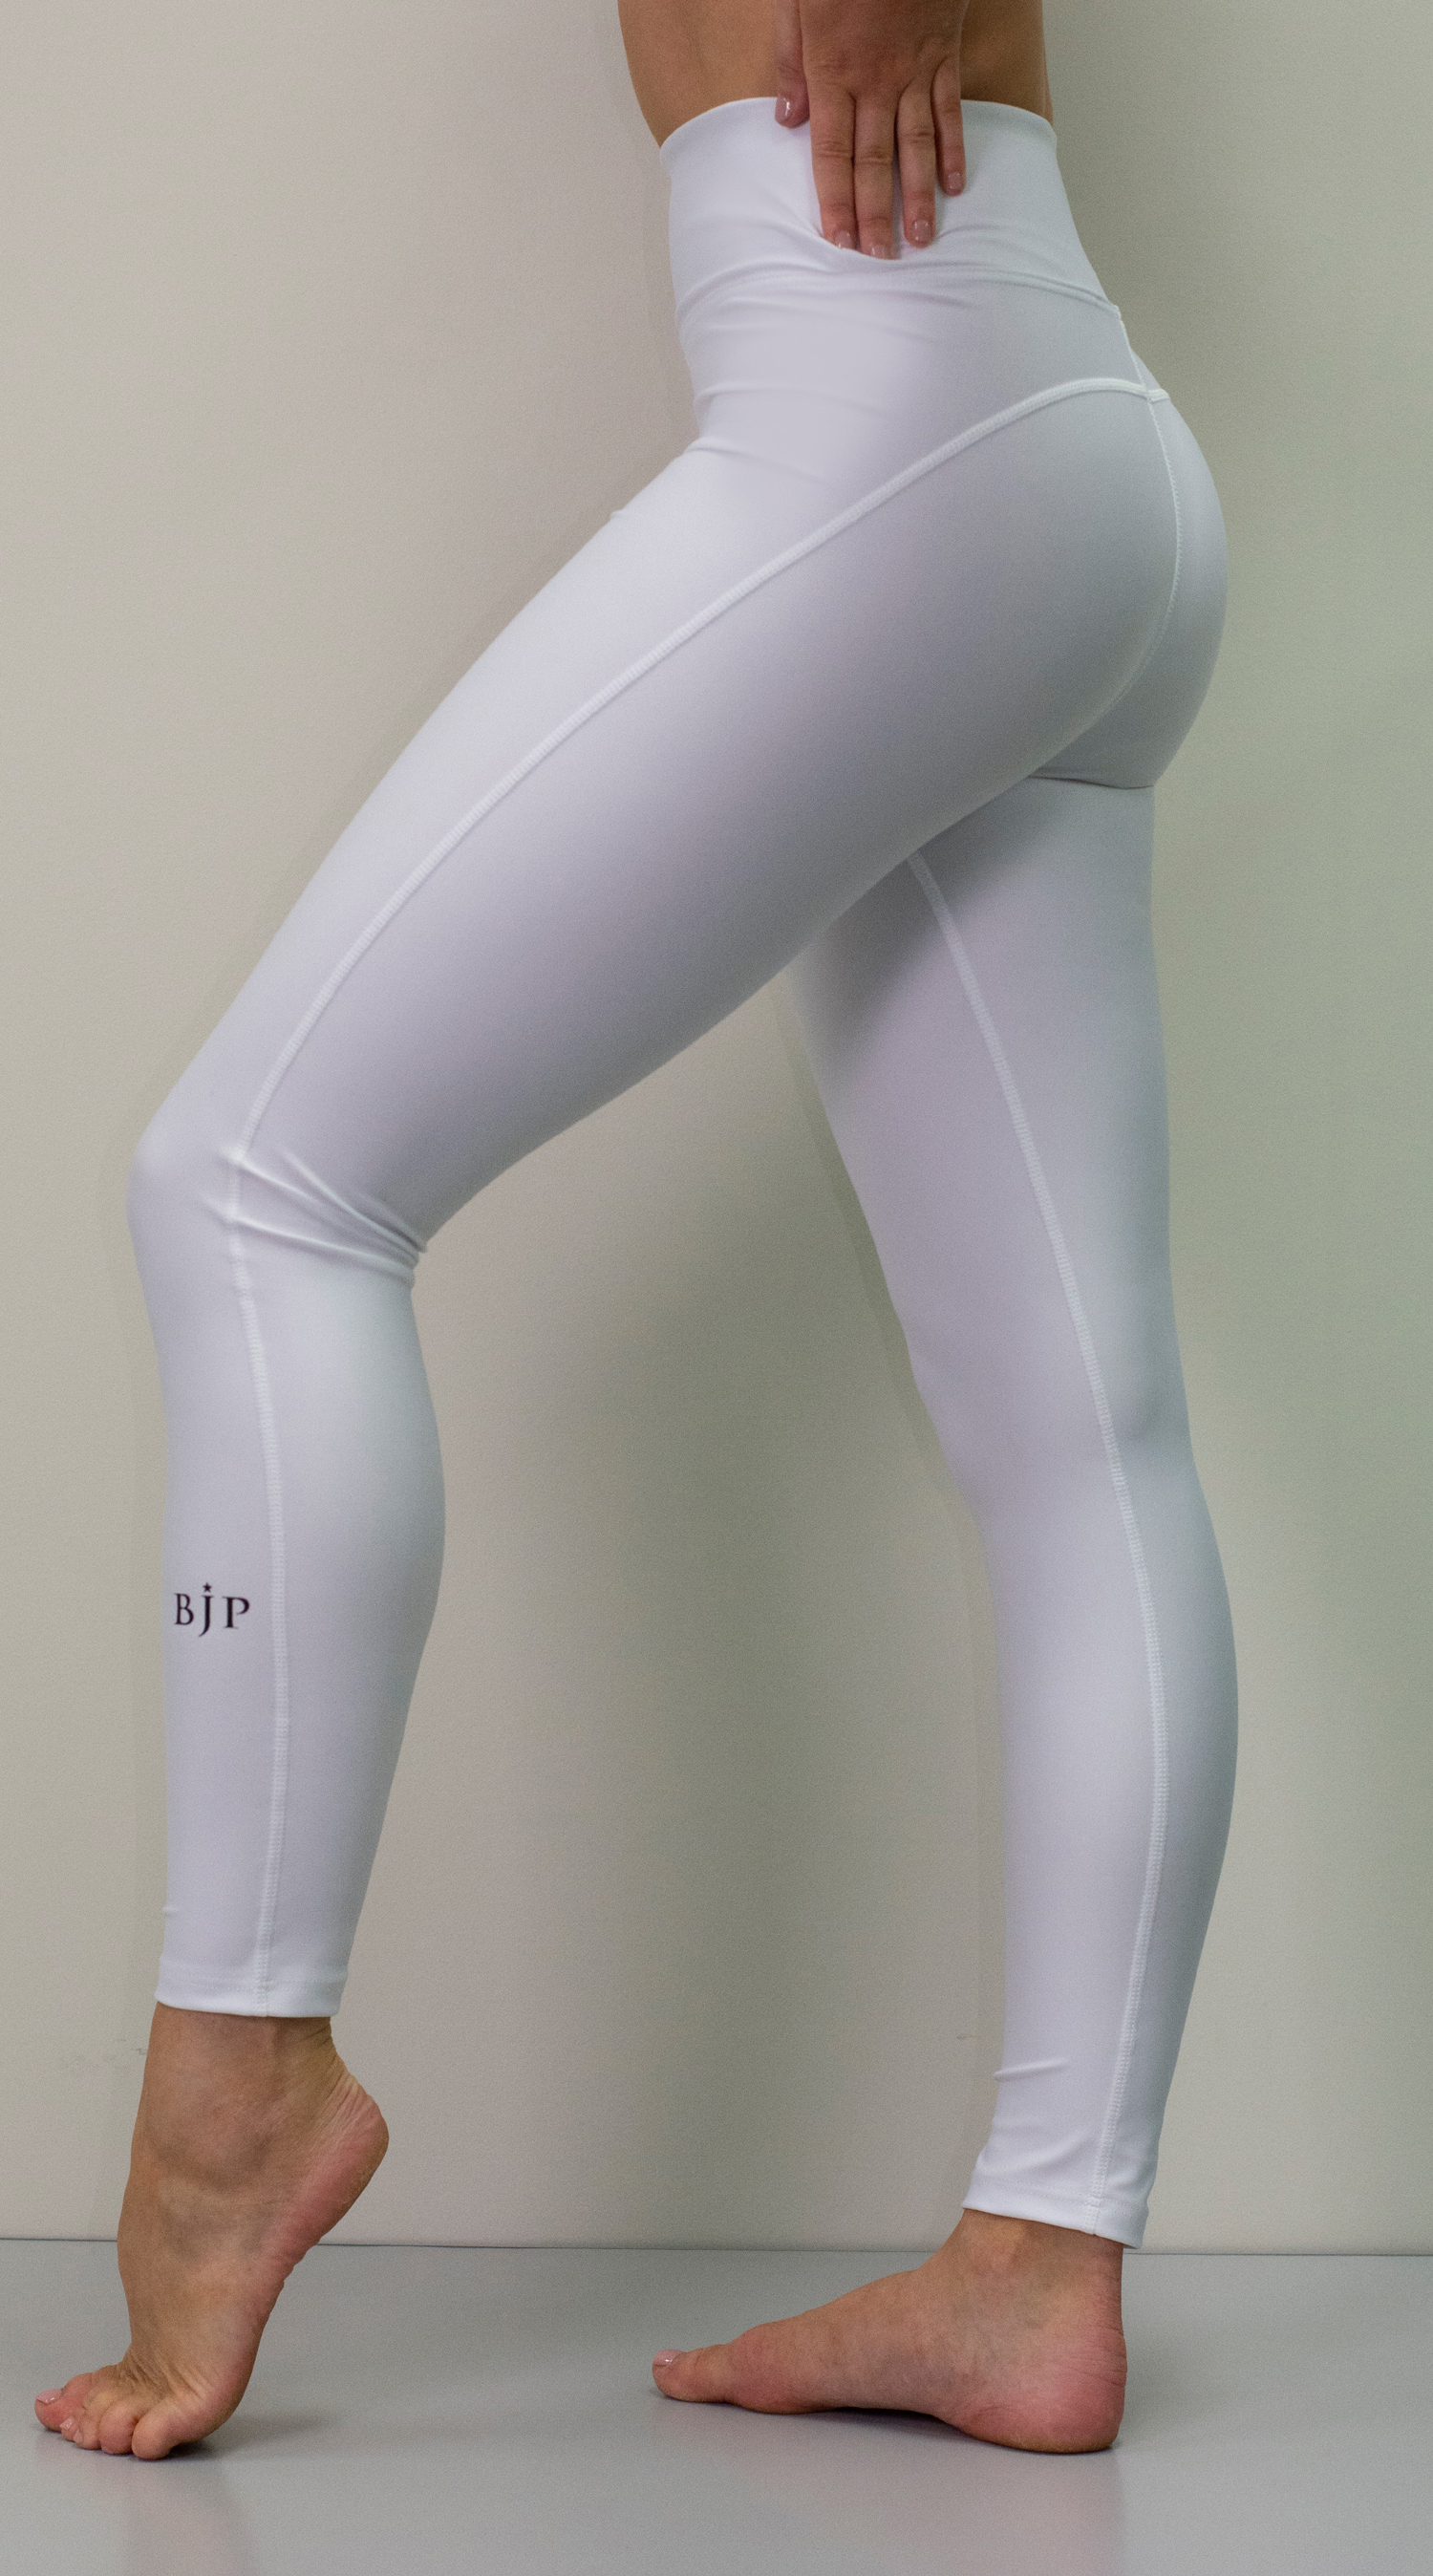 Strut Legging 7/8 Length MTO